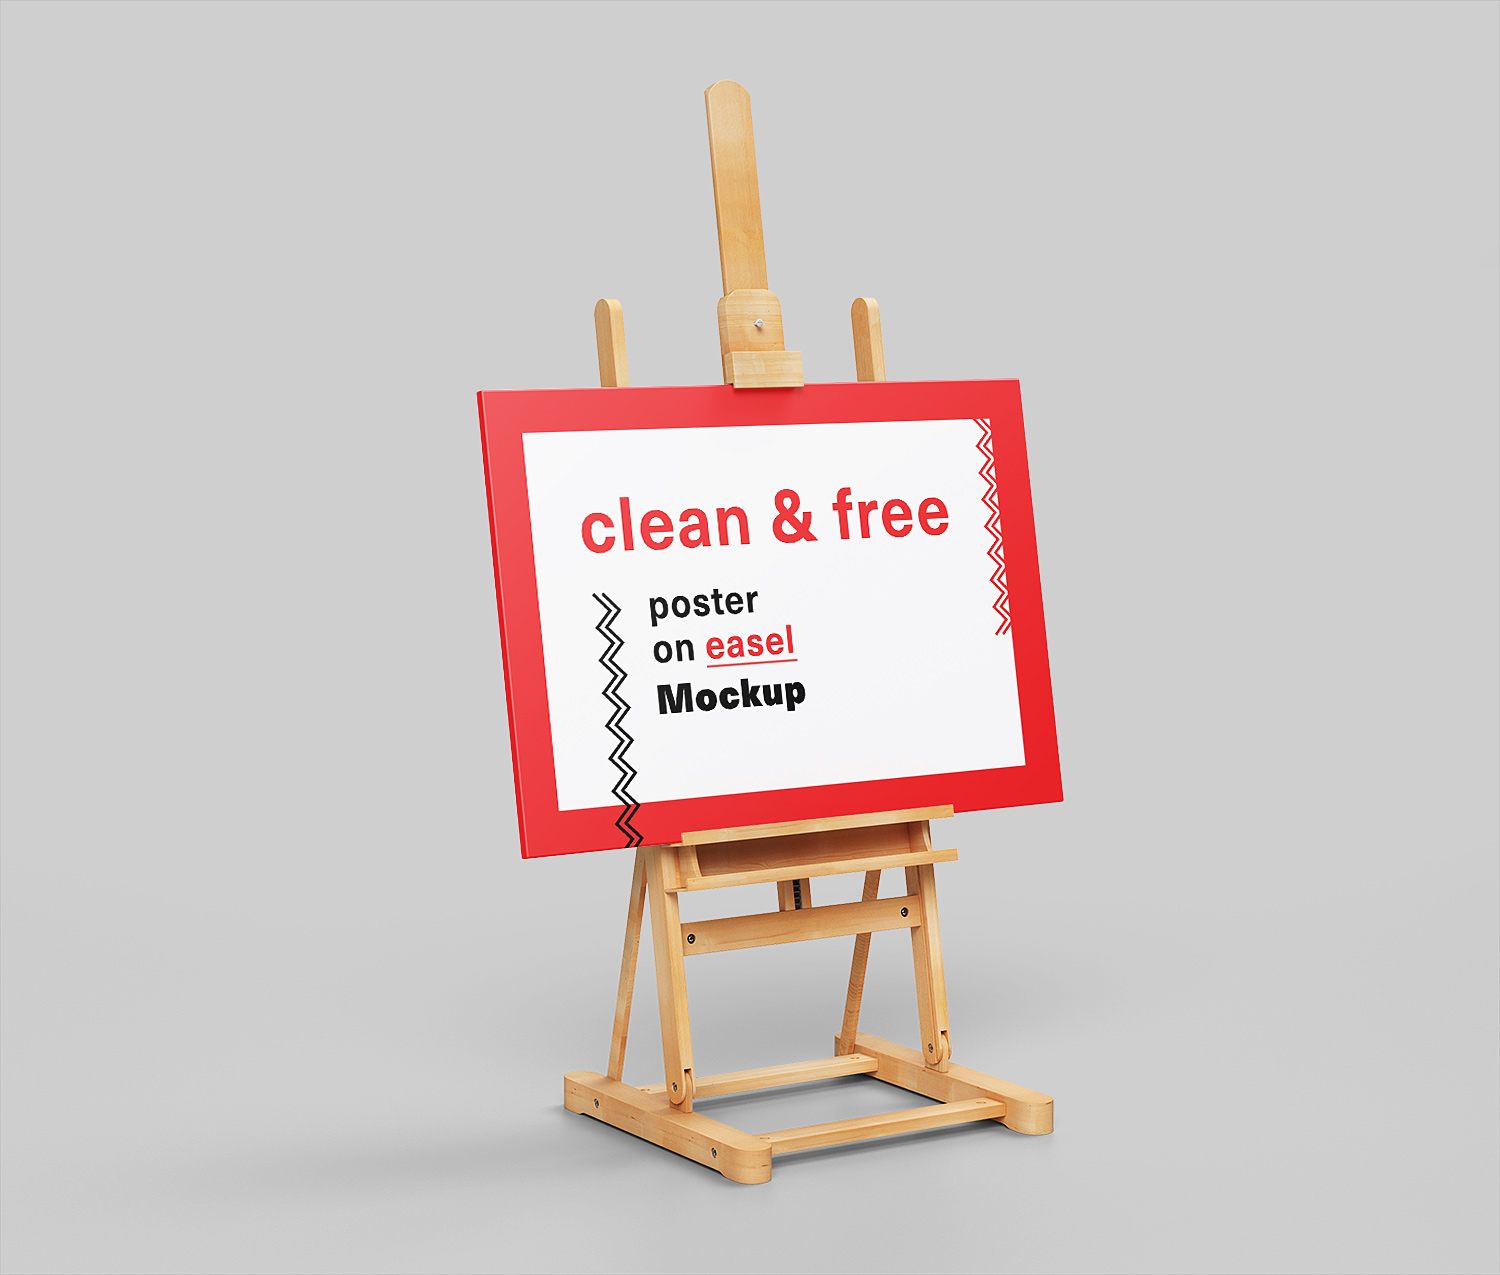 Canvas-Poster-on-Easel-Mockup-Free-03